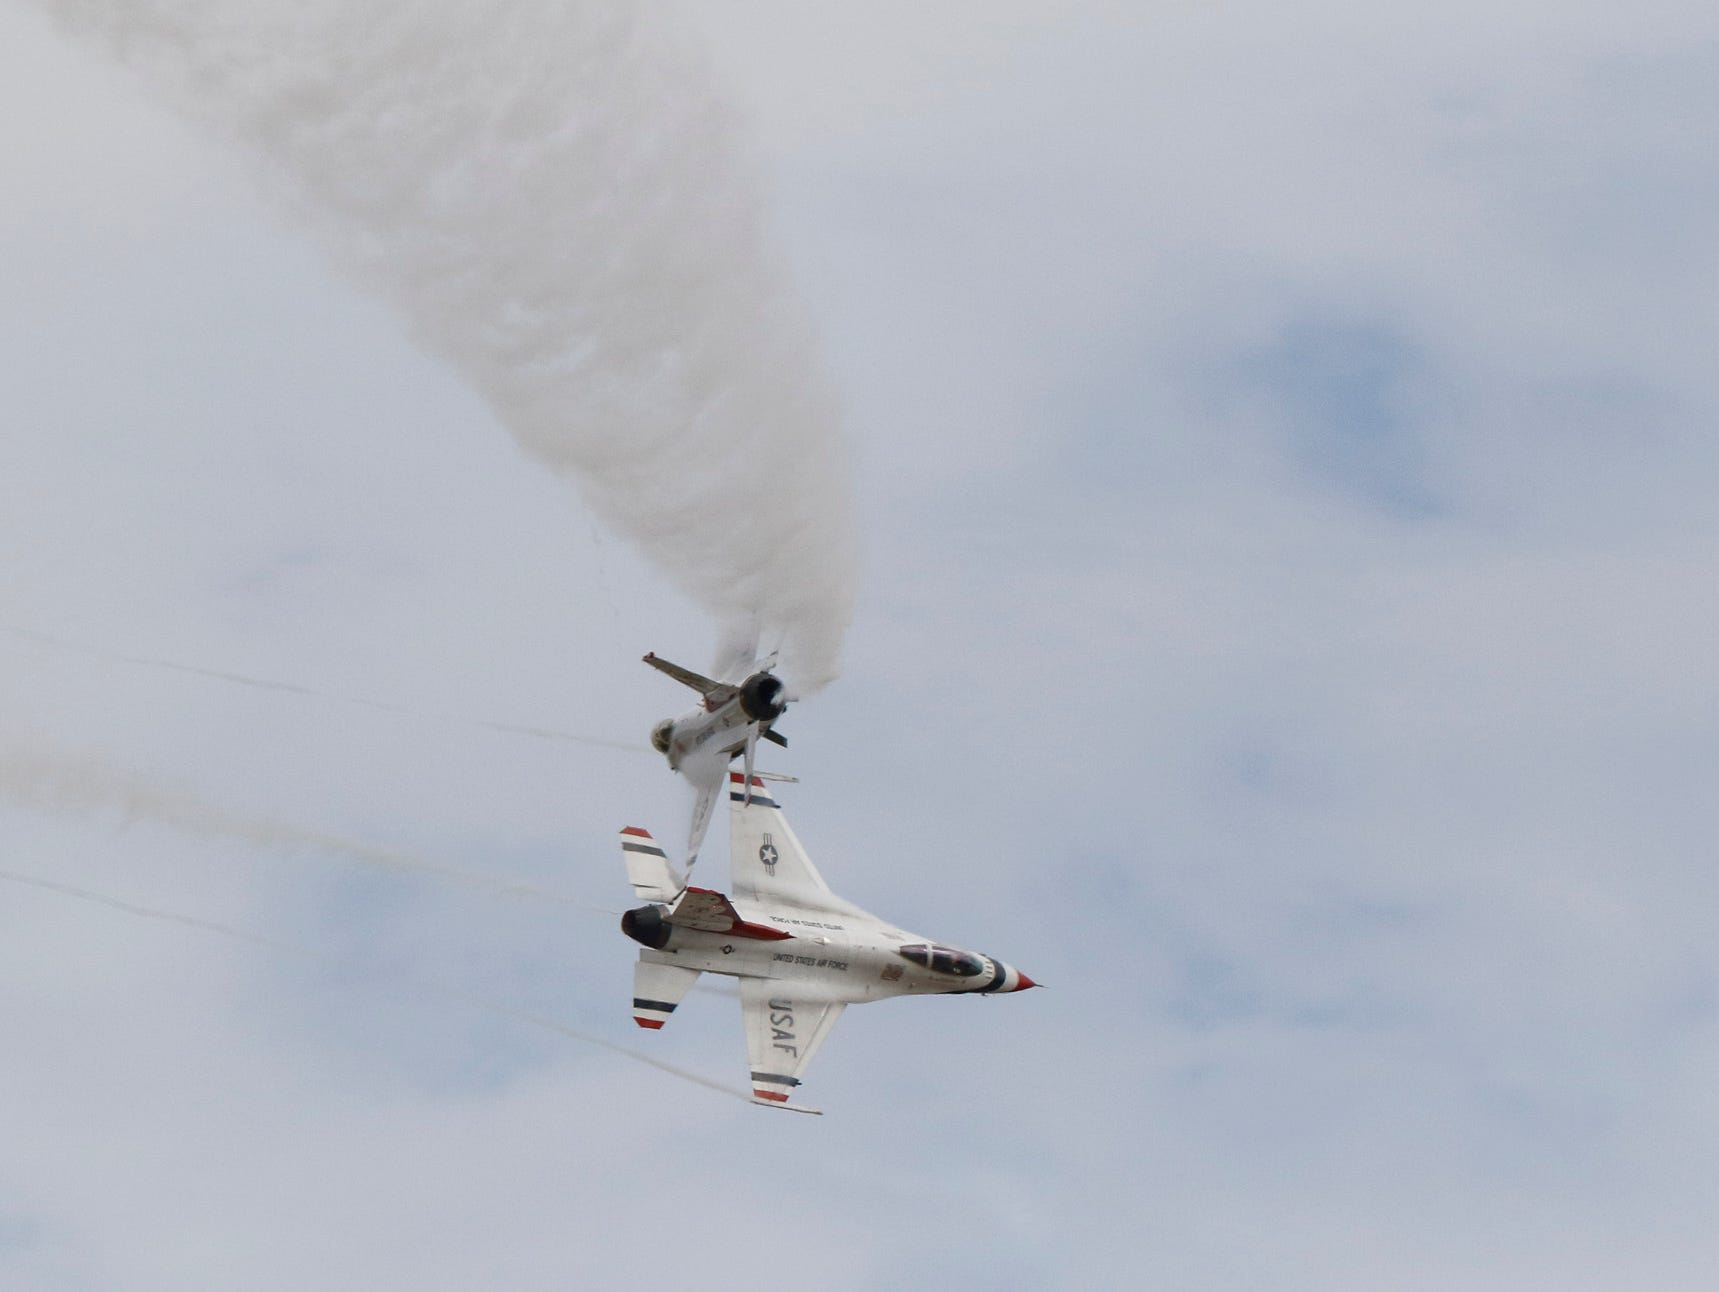 Highlights from the 38th annual California International Airshow, Salinas at the Salinas Municipal Airport on Sunday, Sept. 30, 2018 in Salinas, Calif.